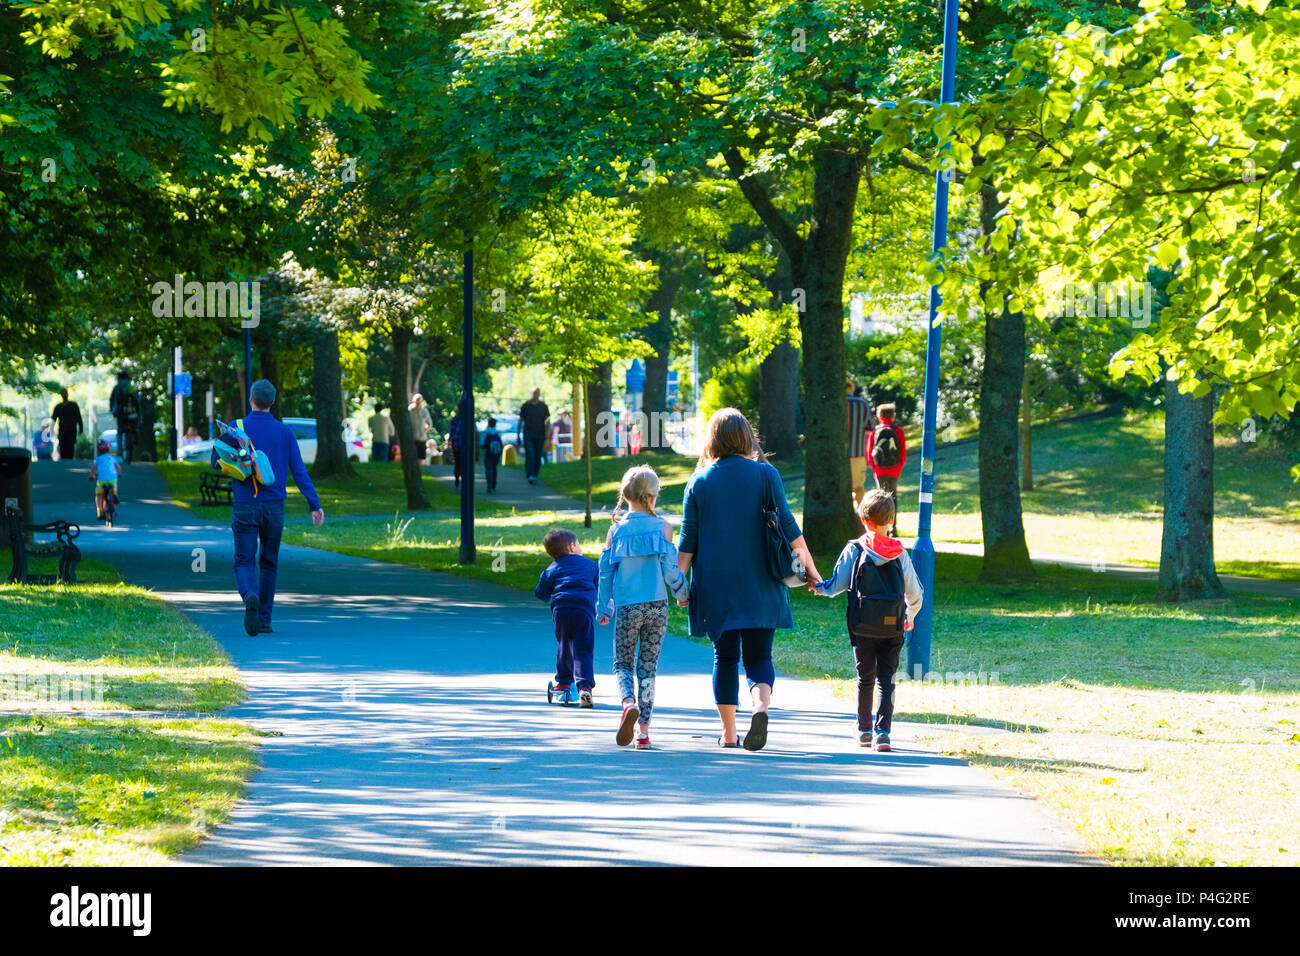 Aberystwyth, UK. 22 June 2018.Familes walking and cycling down Plas Crug park on a warm sunny morning in Aberystwyth Wales.  Temperatures are set to rise over the coming days, reaching the high 20's celsius by the middle of next week  photo © Keith Morris / Alamy Live News - Stock Image